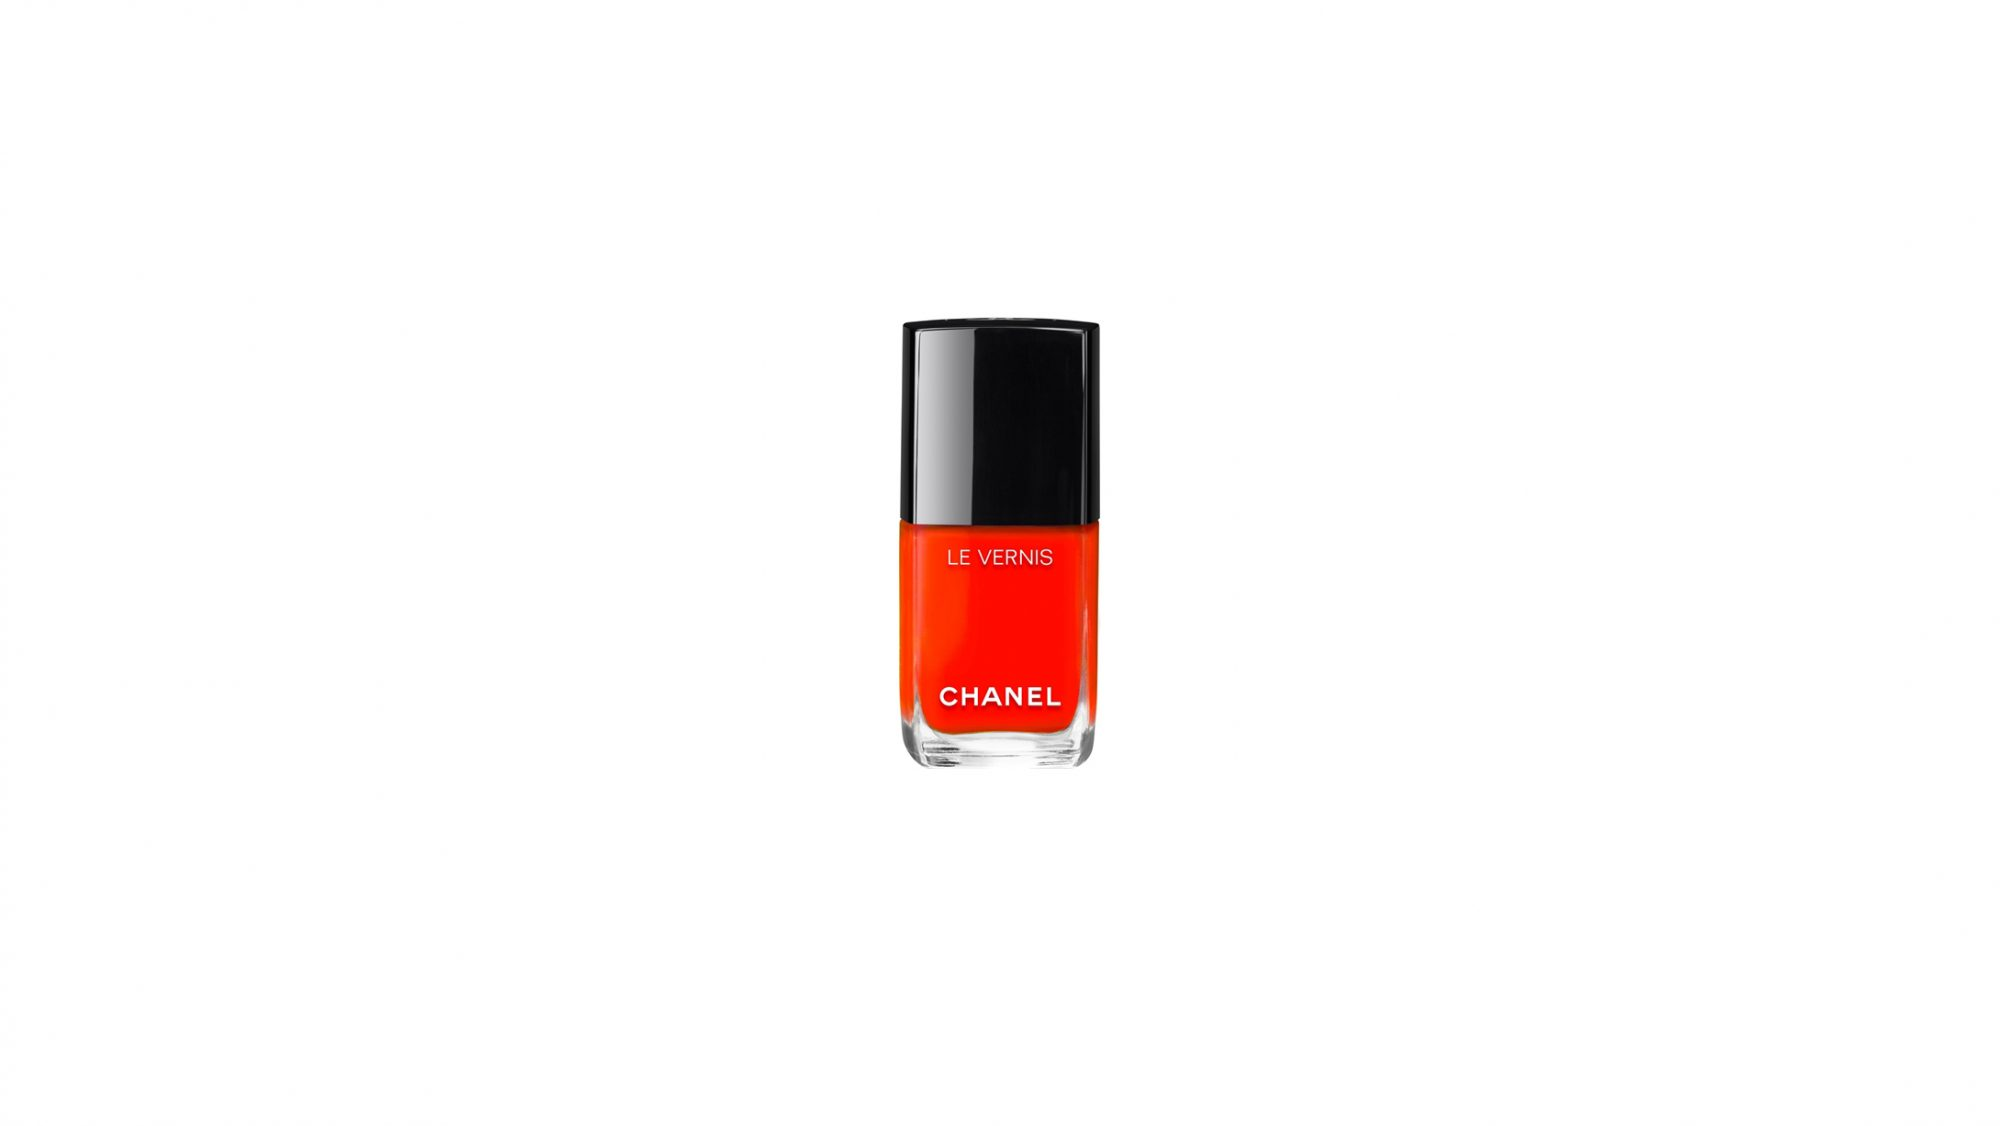 Chanel LE VERNIS Longwear Nail Colour in Gitane